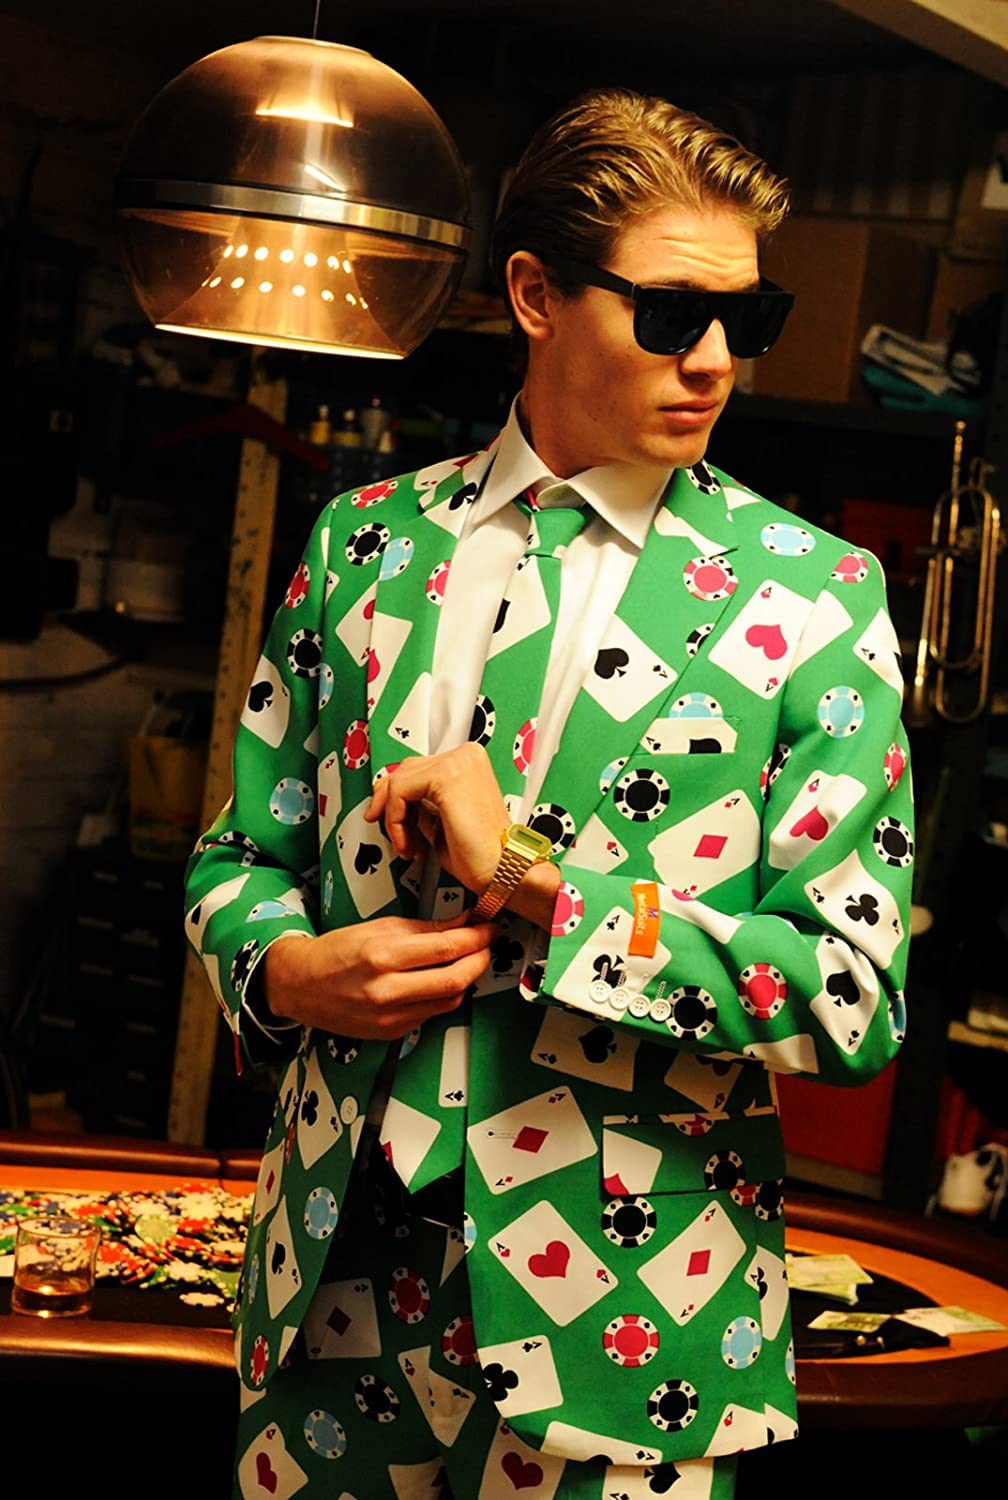 Opposuits 0199895-0011-EU46 - Casino / Poker Face Fancy Dress Costume / Outfit / Suit: Amazon.co.uk: Toys & Games